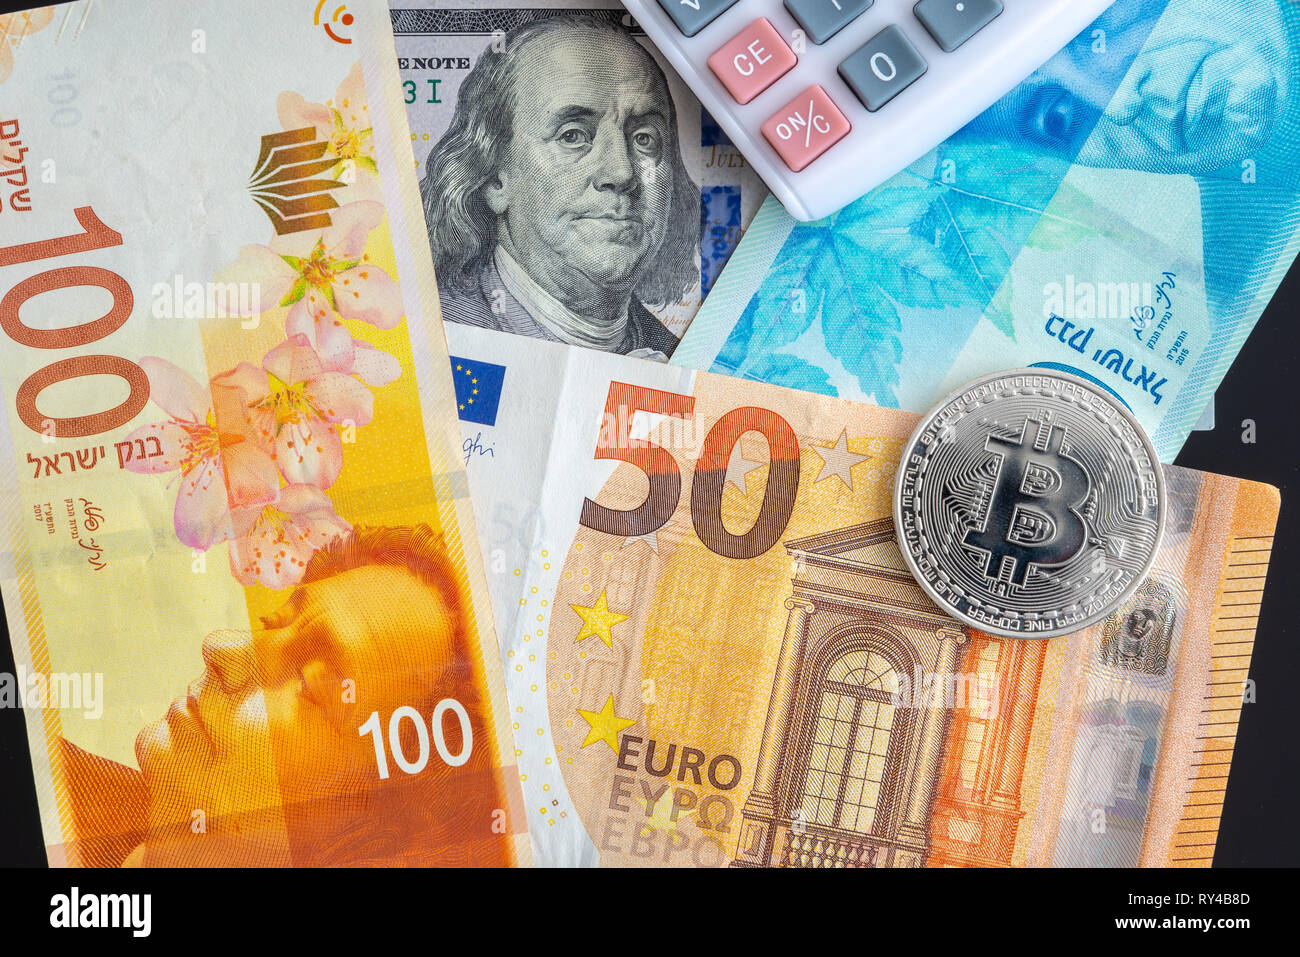 Foreign Currency (Forex) - Investment or Speculation - Stock Image